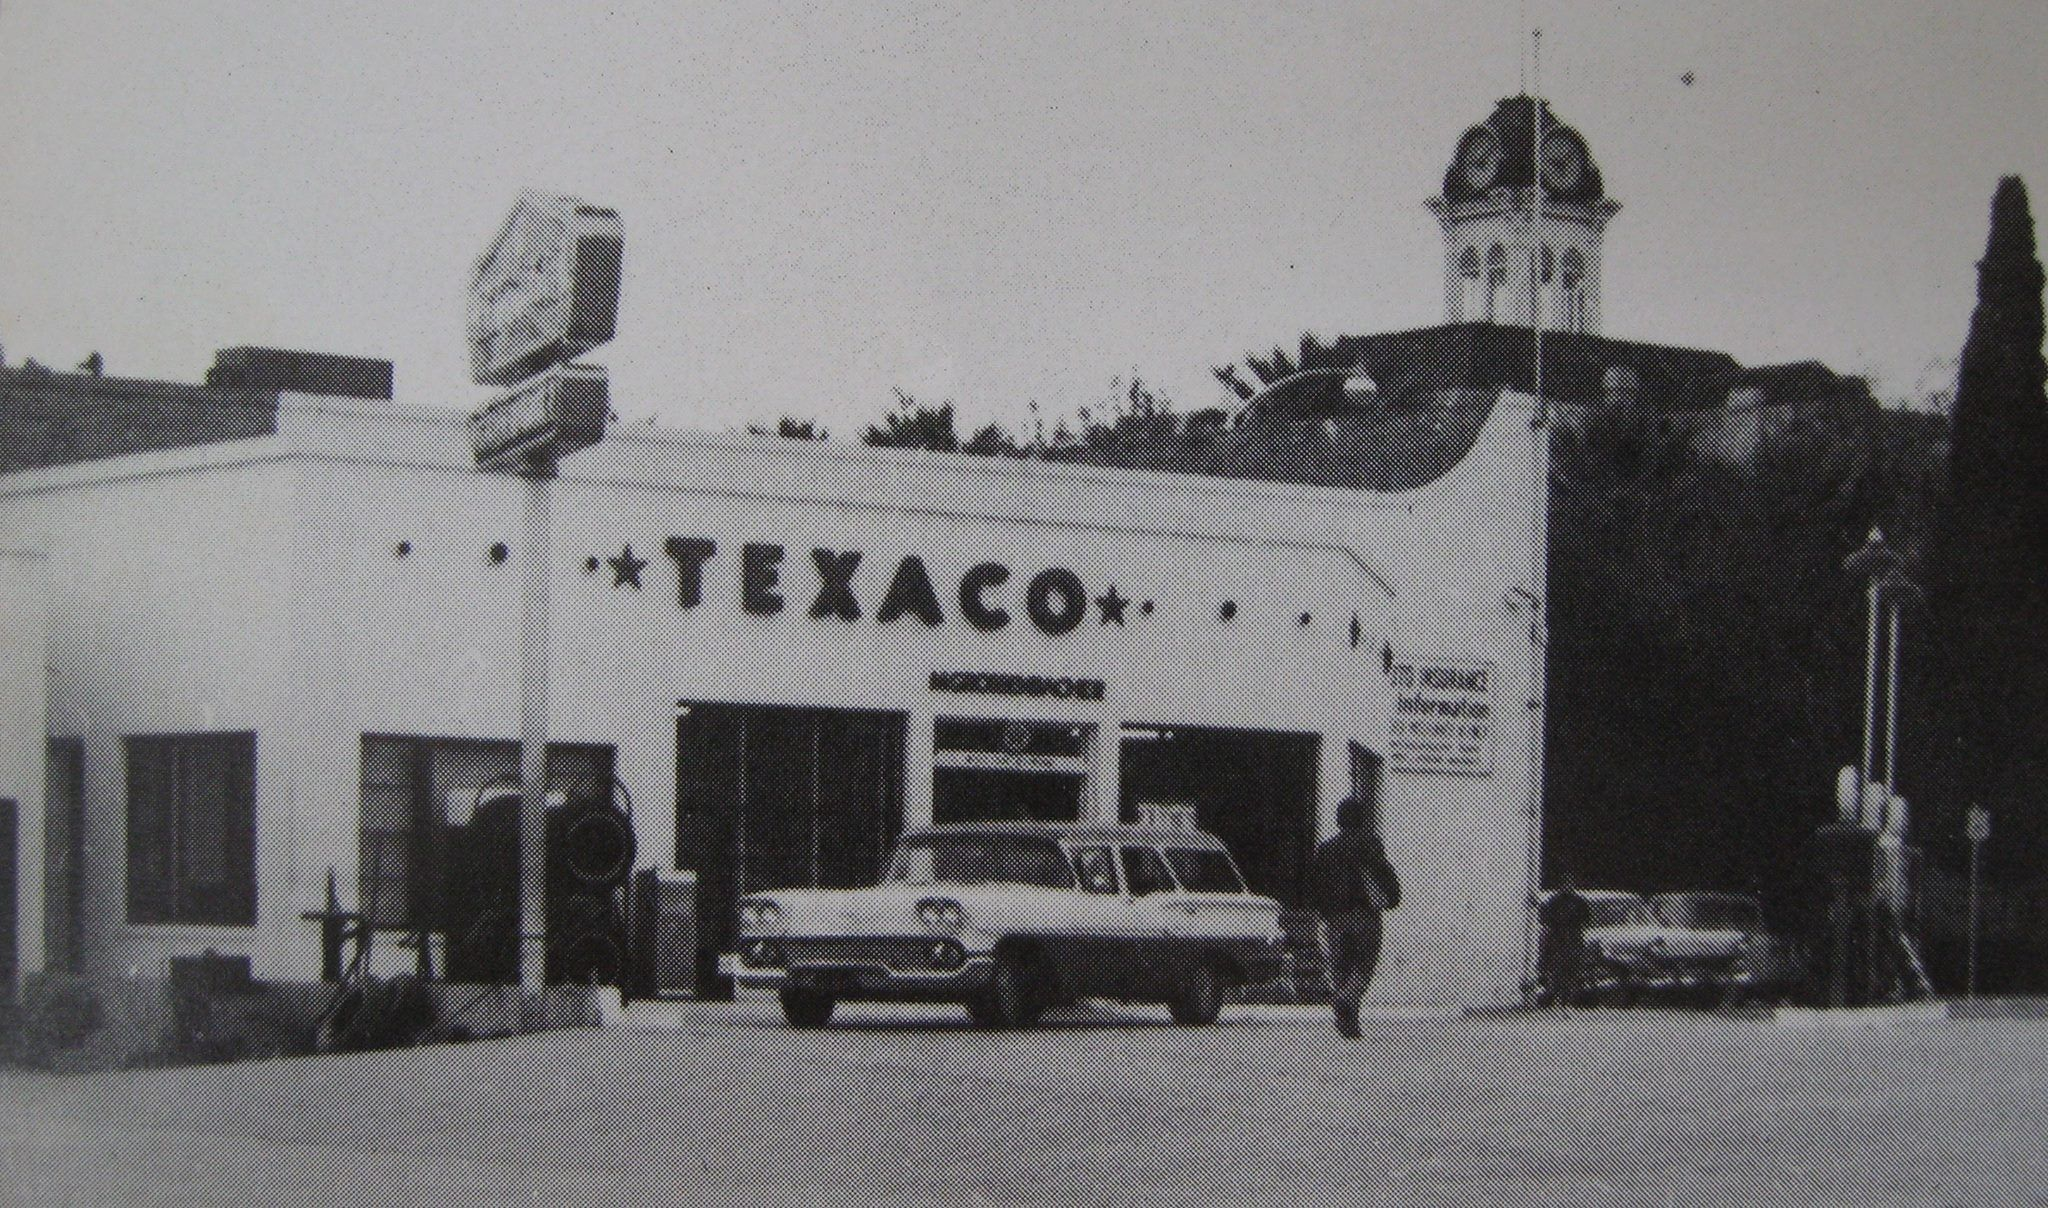 Pin by Vicky Dee on Eagle Pass, TX Eagle pass, Texaco, World